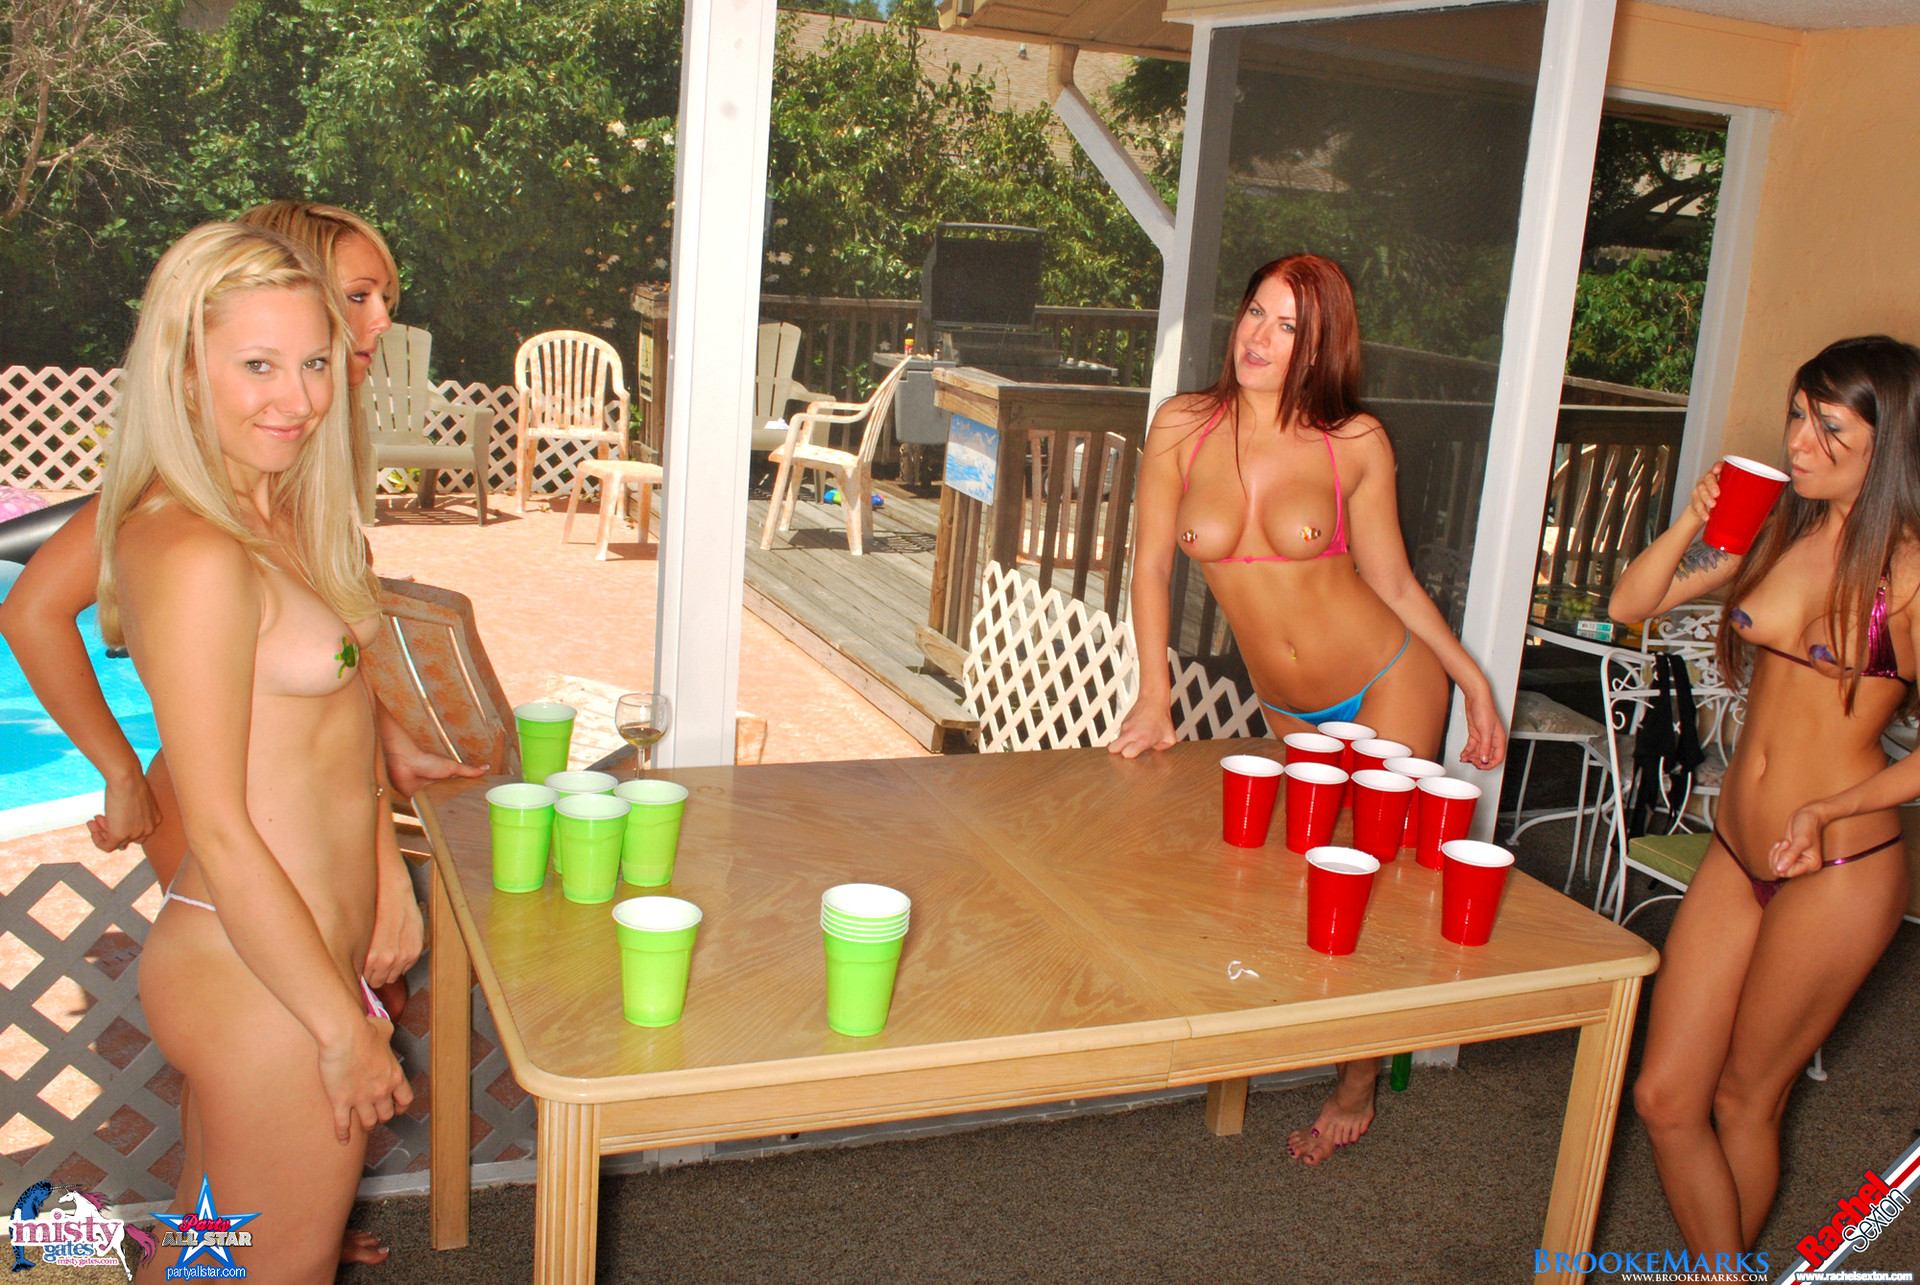 Hot young sexy beer pong boys, teen thong picture gallery